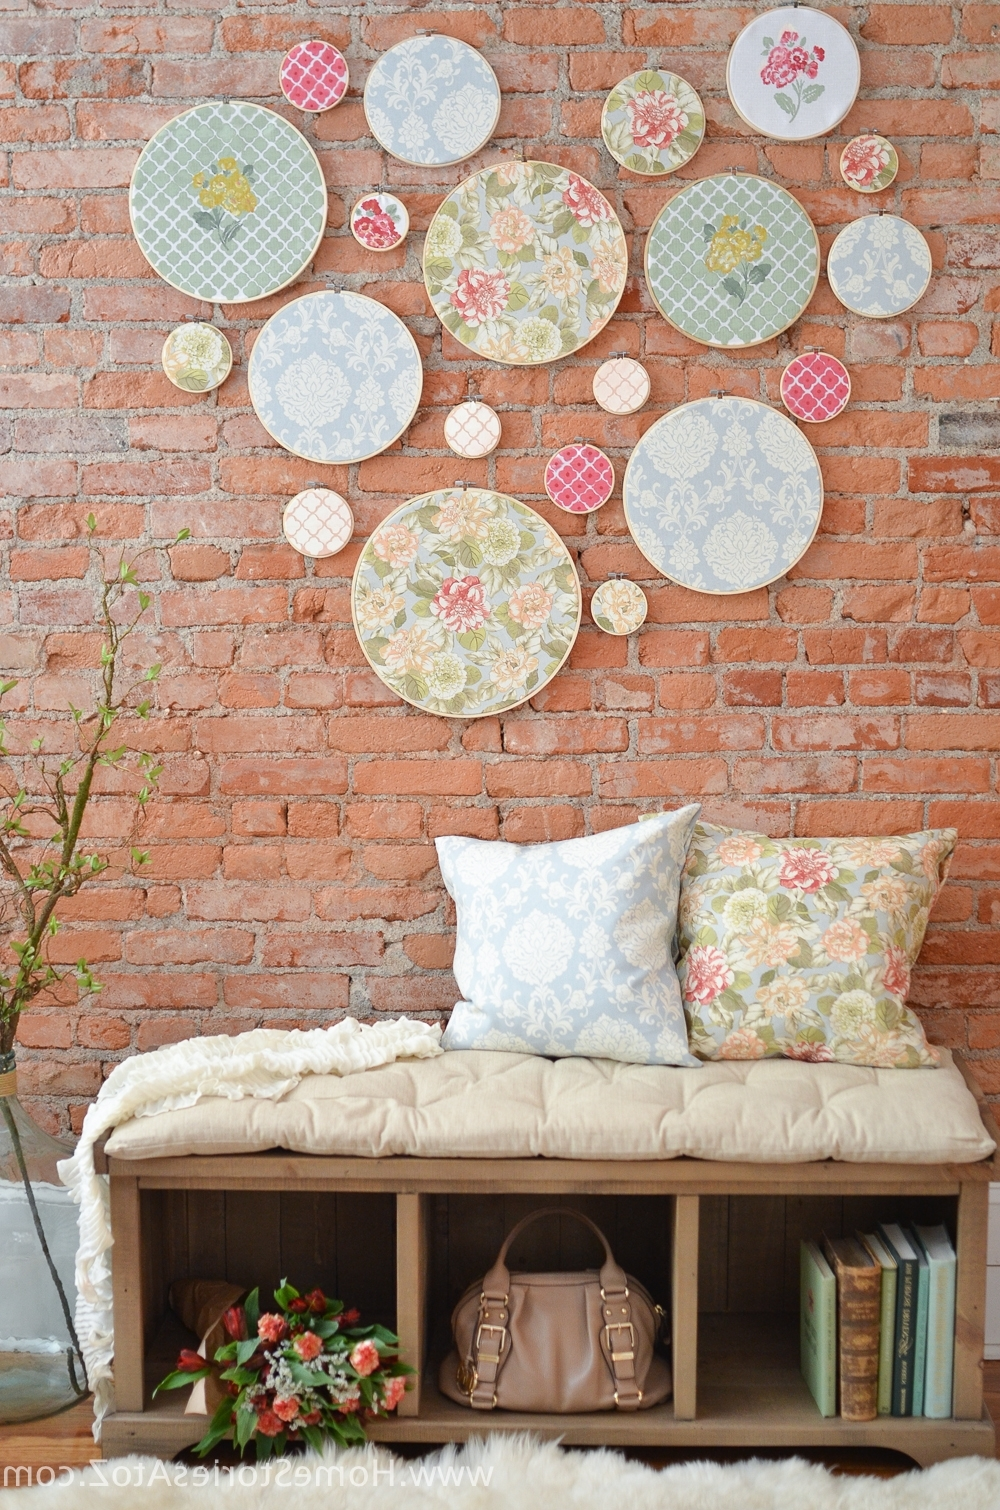 Popular Diy Embroidery Hoop Wall Art – Home Stories A To Z With Fabric Hoop Wall Art (Gallery 7 of 15)